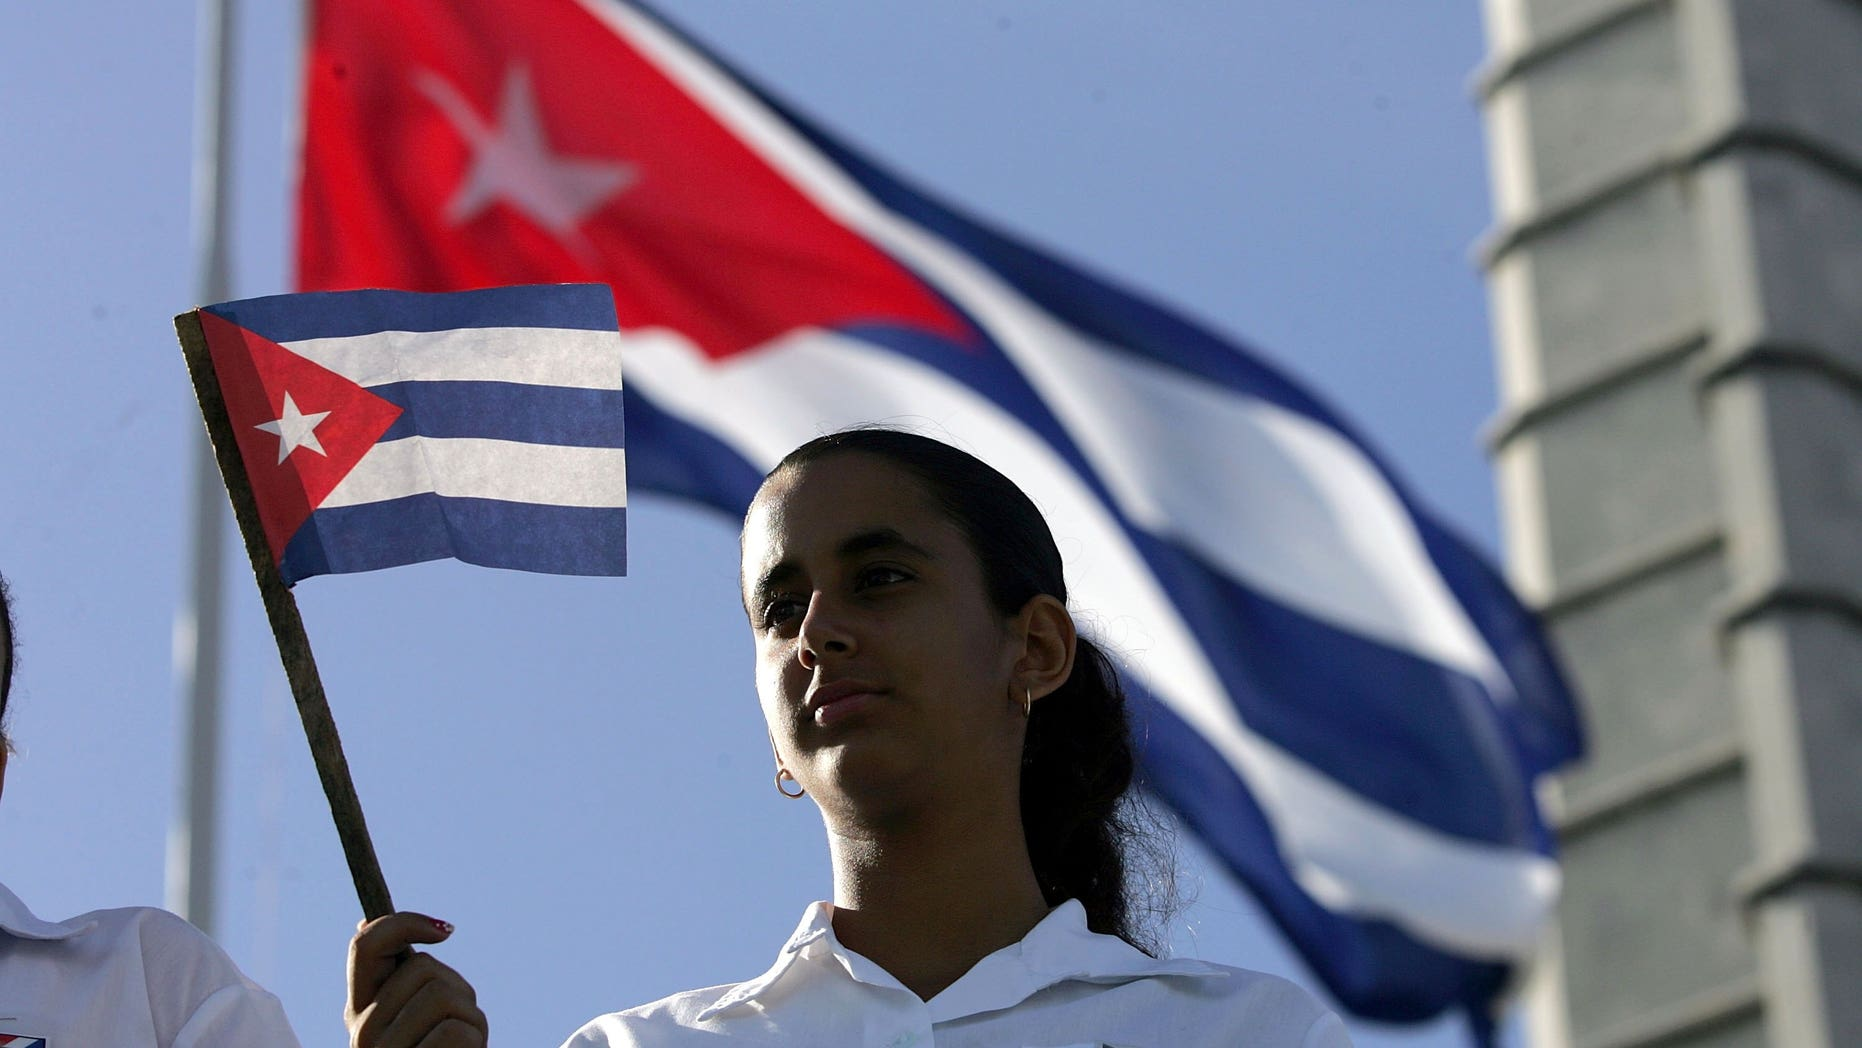 HAVANA, CUBA - DECEMBER 02:  A young women waves a Cuban flag in Havana's Revolution Square during the 50th anniversary celebration of the forming of Cuba's Revolutionary Armed Forces December 2, 2006 in Havana, Cuba. Many in the crowd were hoping to catch a glimpse of Cuban President Fidel Castro who did not attend the parade.  (Photo by Joe Raedle/Getty Images)